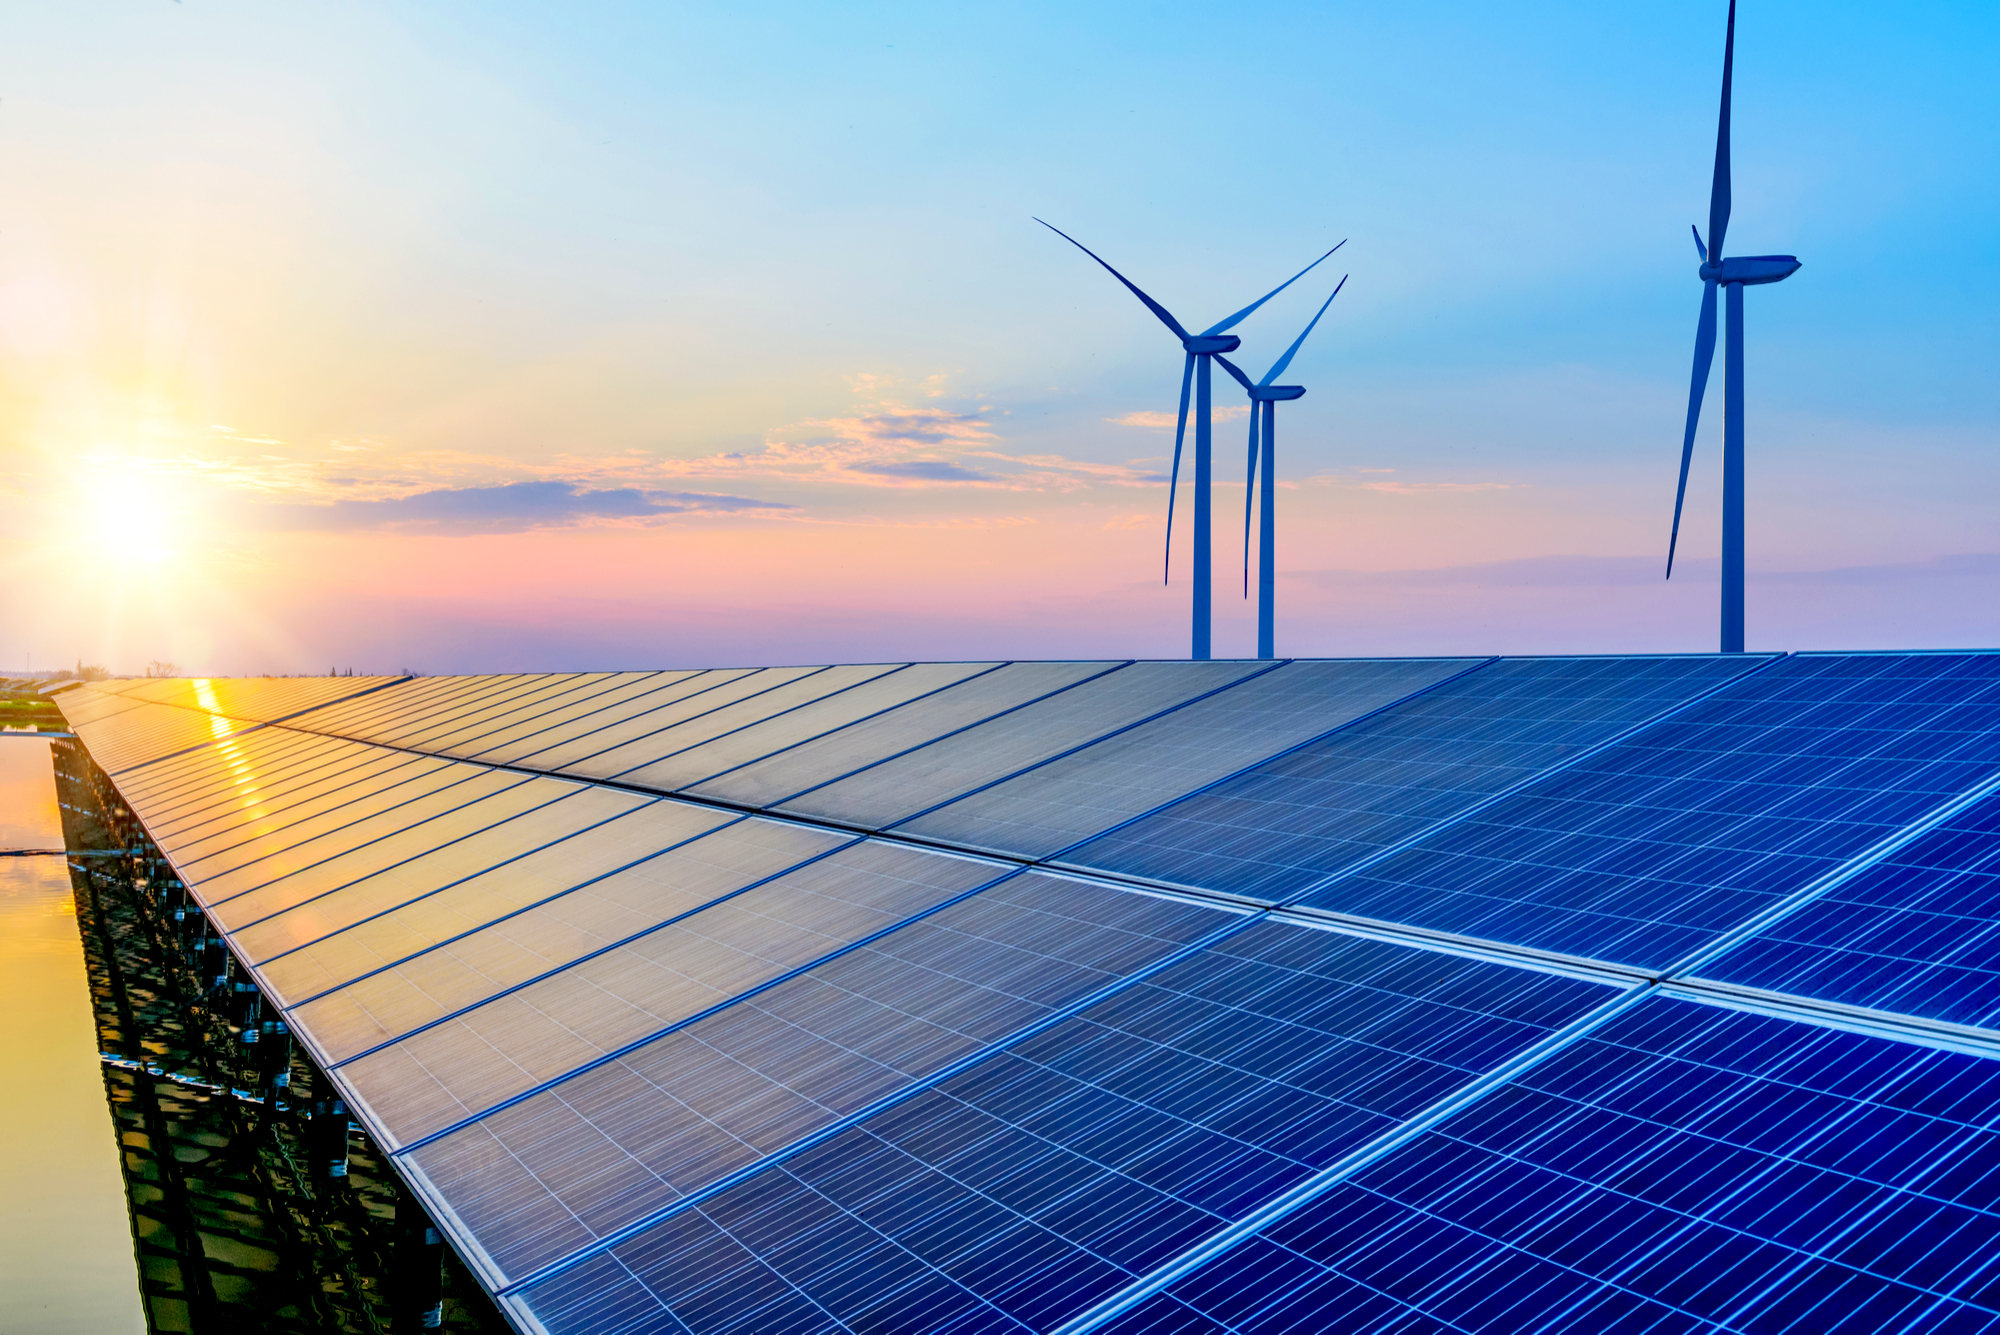 What Would an Accelerated Global Energy Transition Look Like?